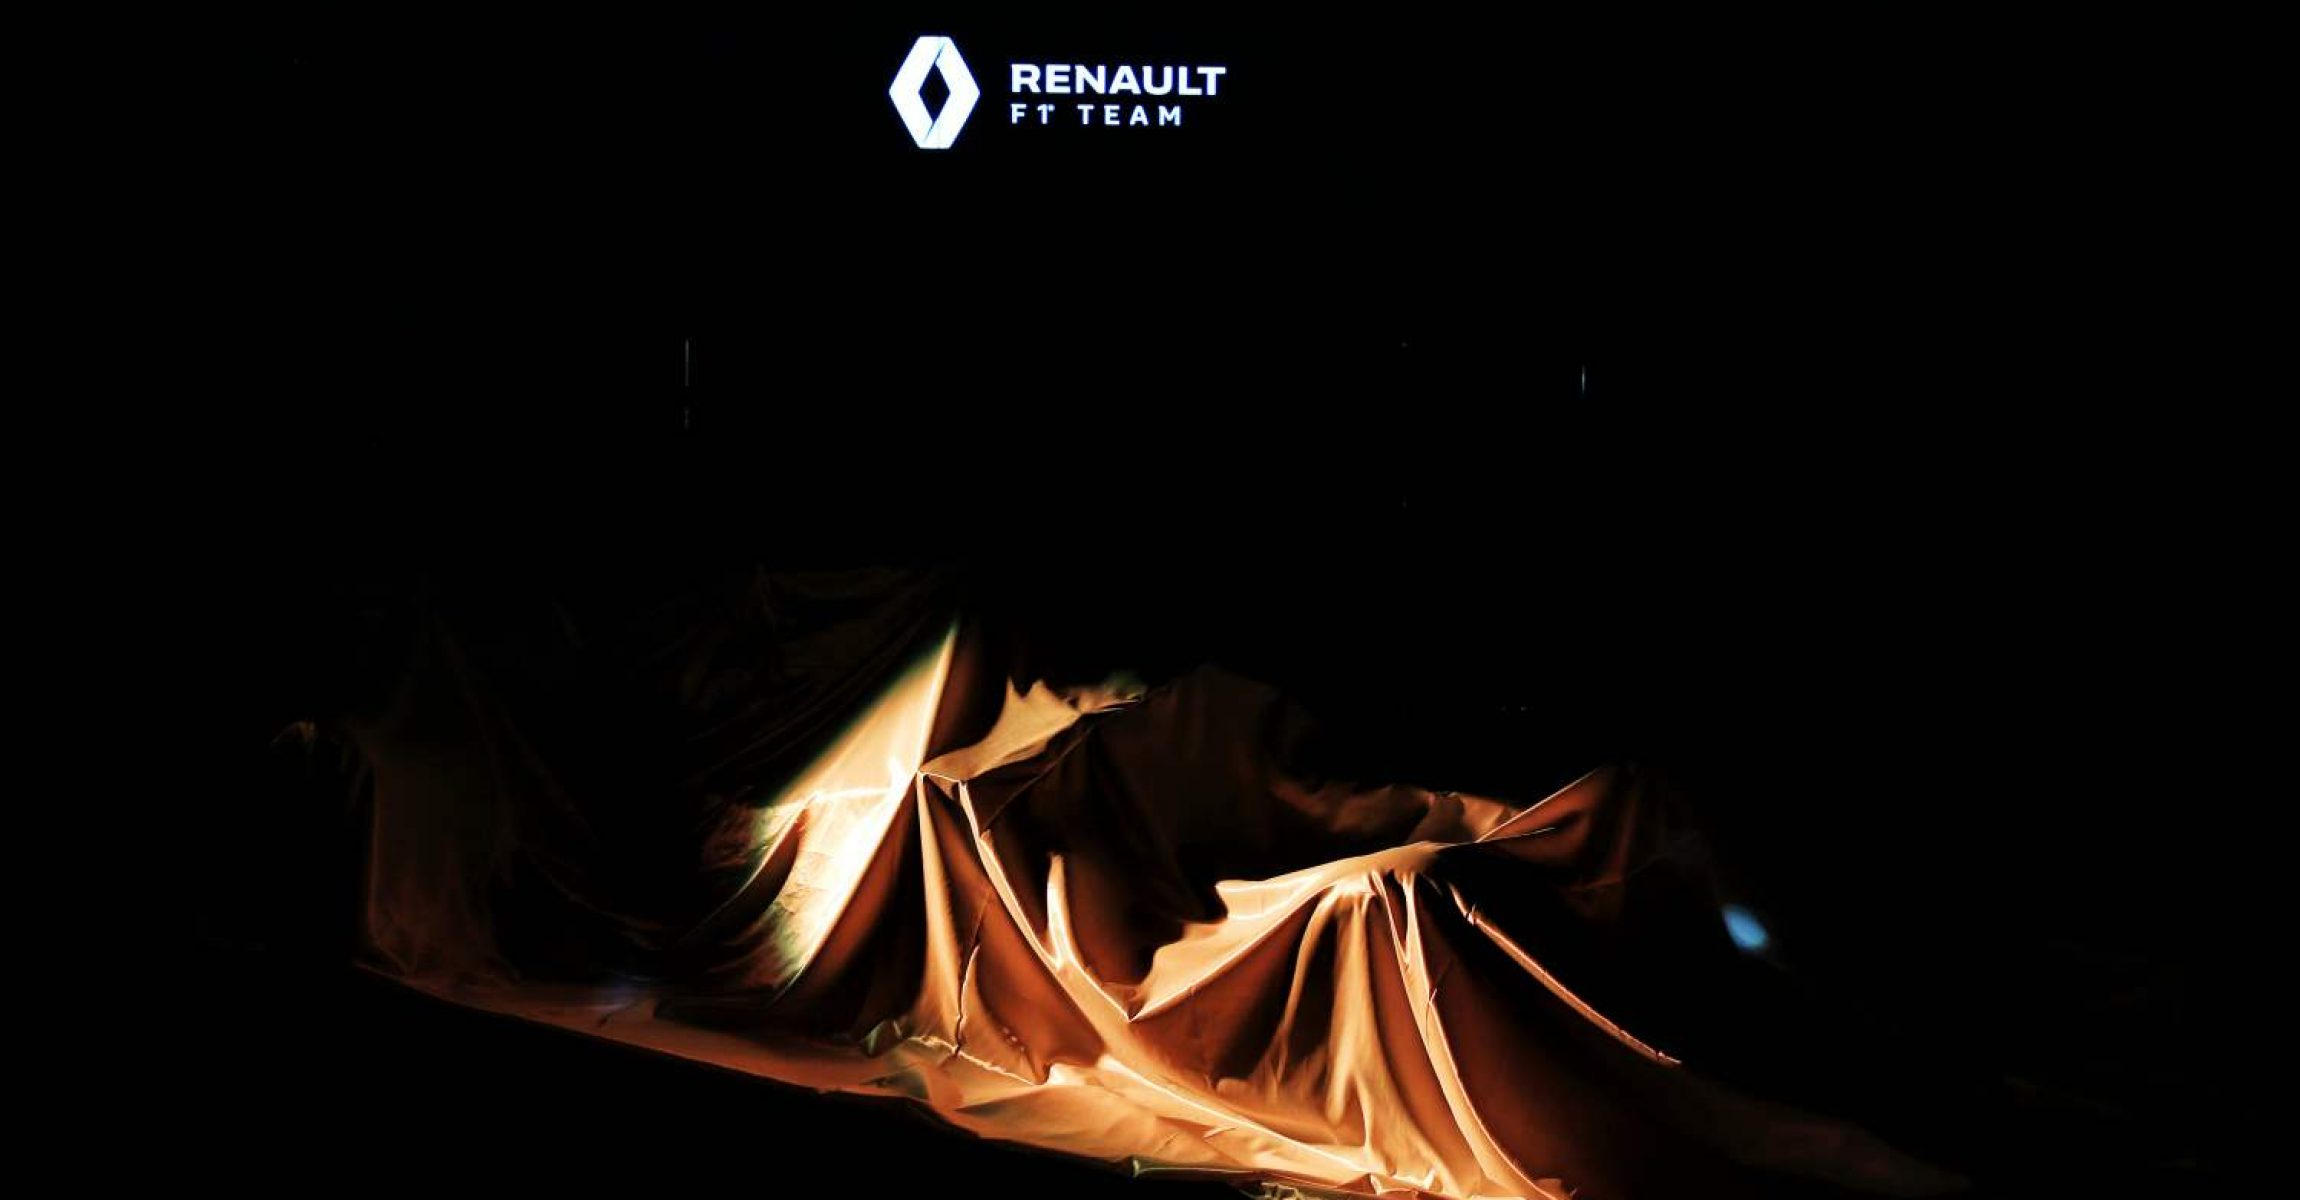 Renault car launch covered